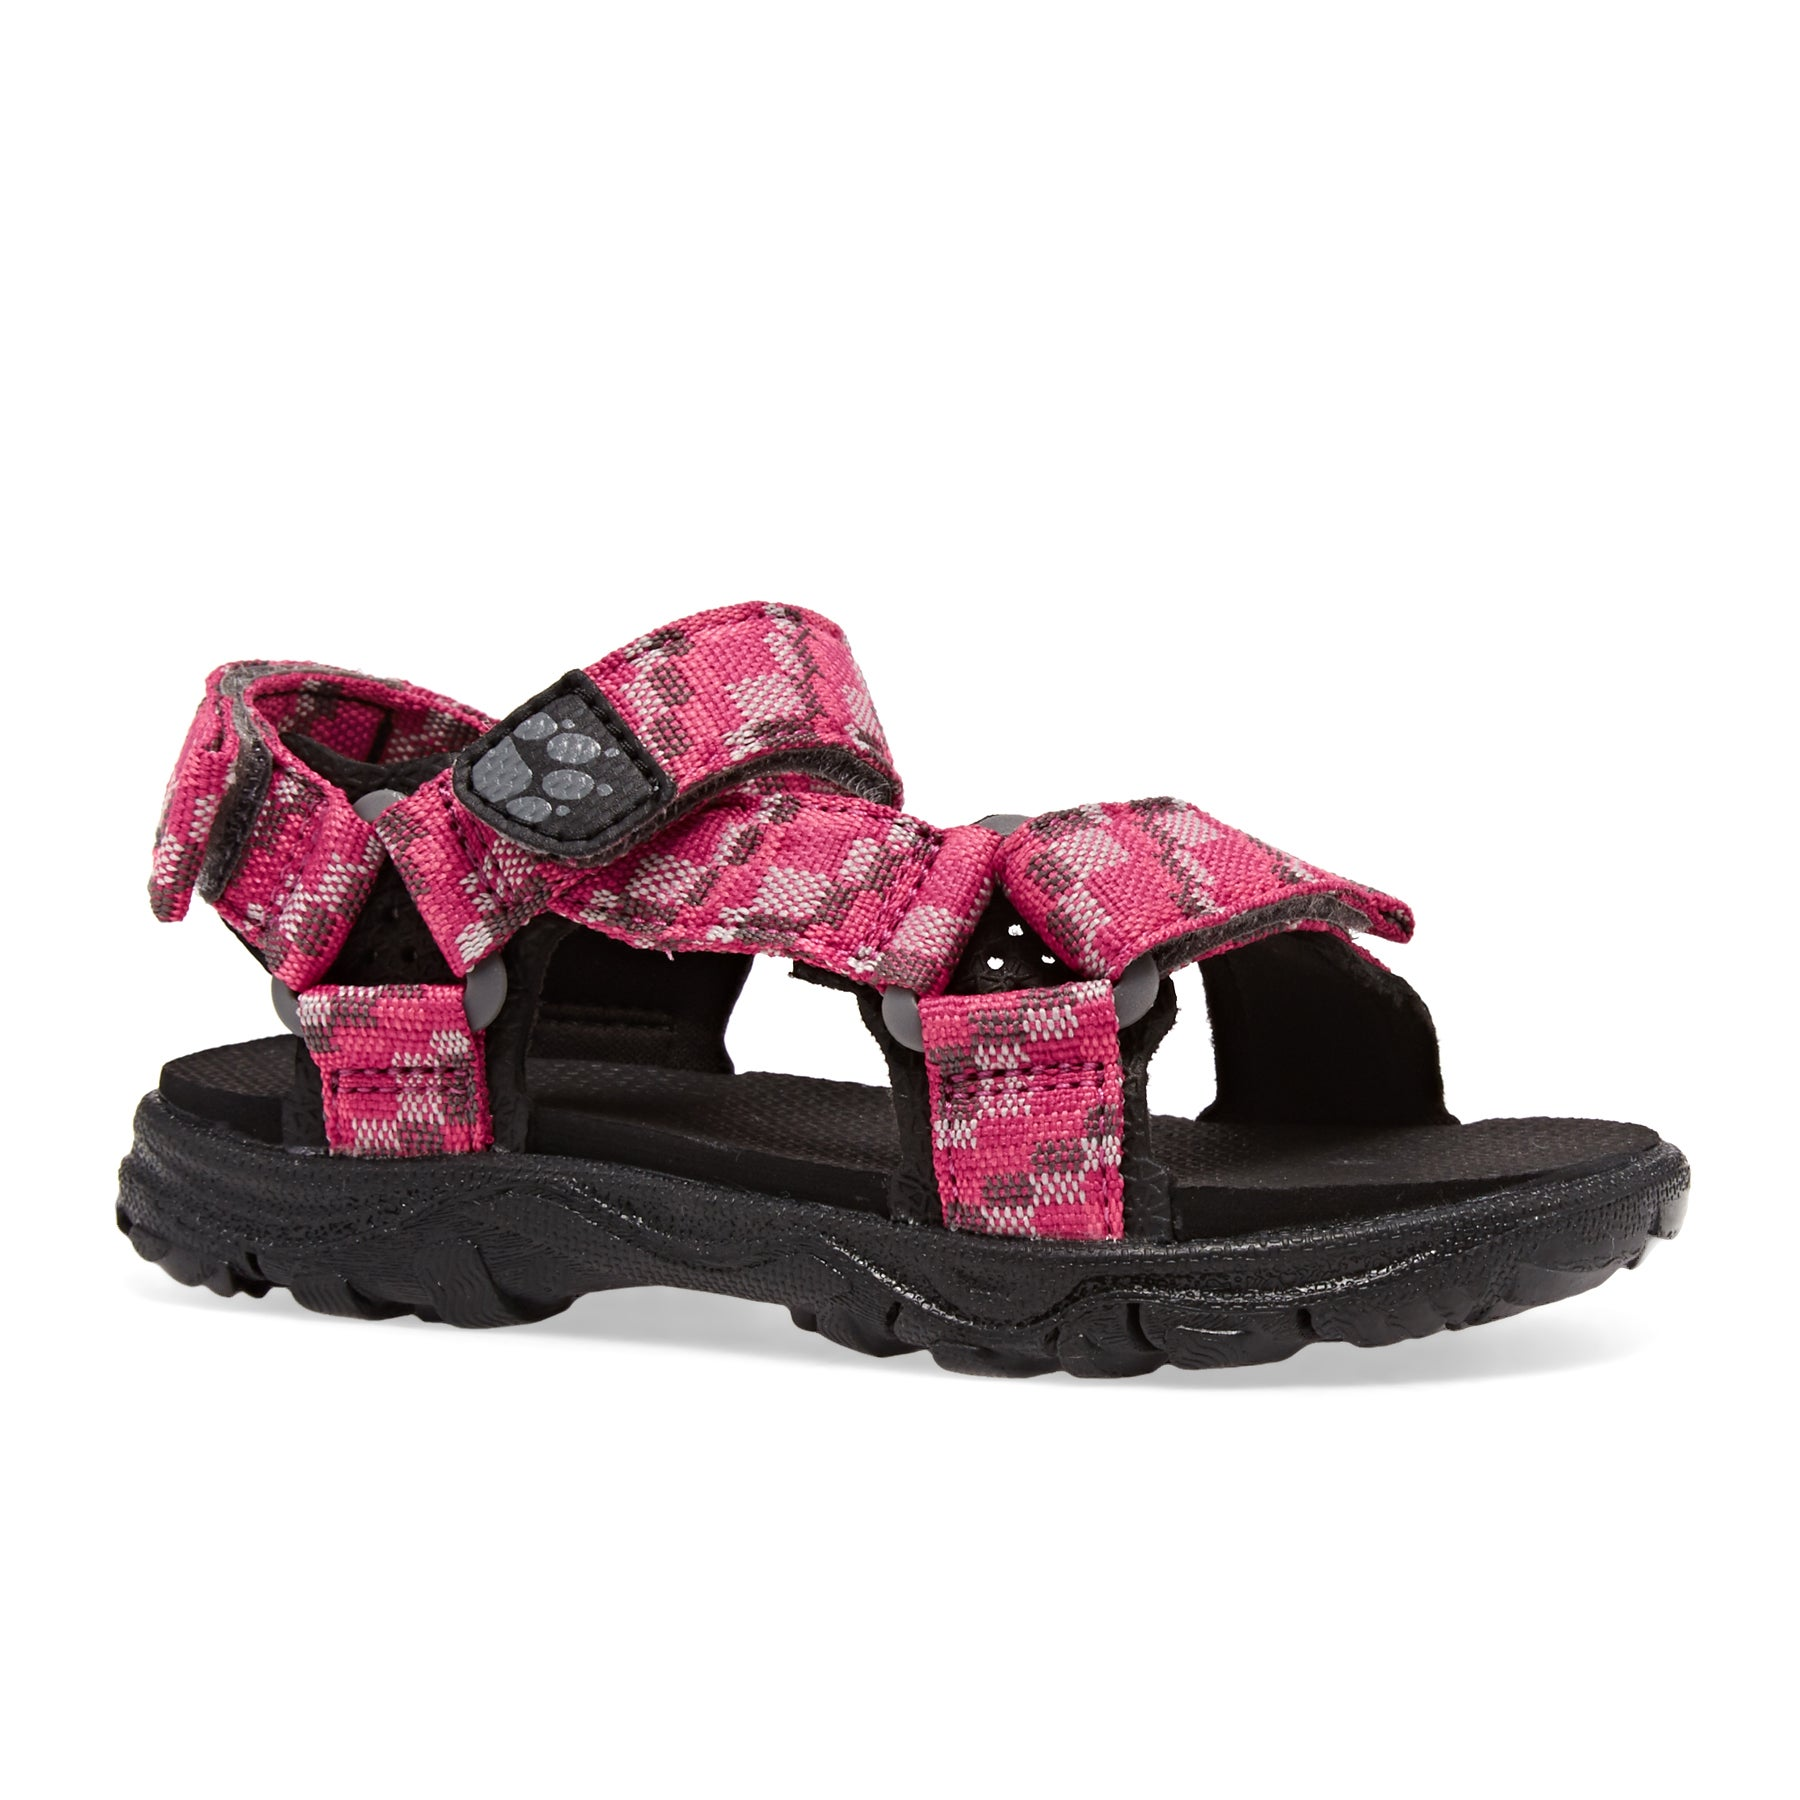 Jack Wolfskin Seven Seas 2 Girls Sandals - Tropic Pink